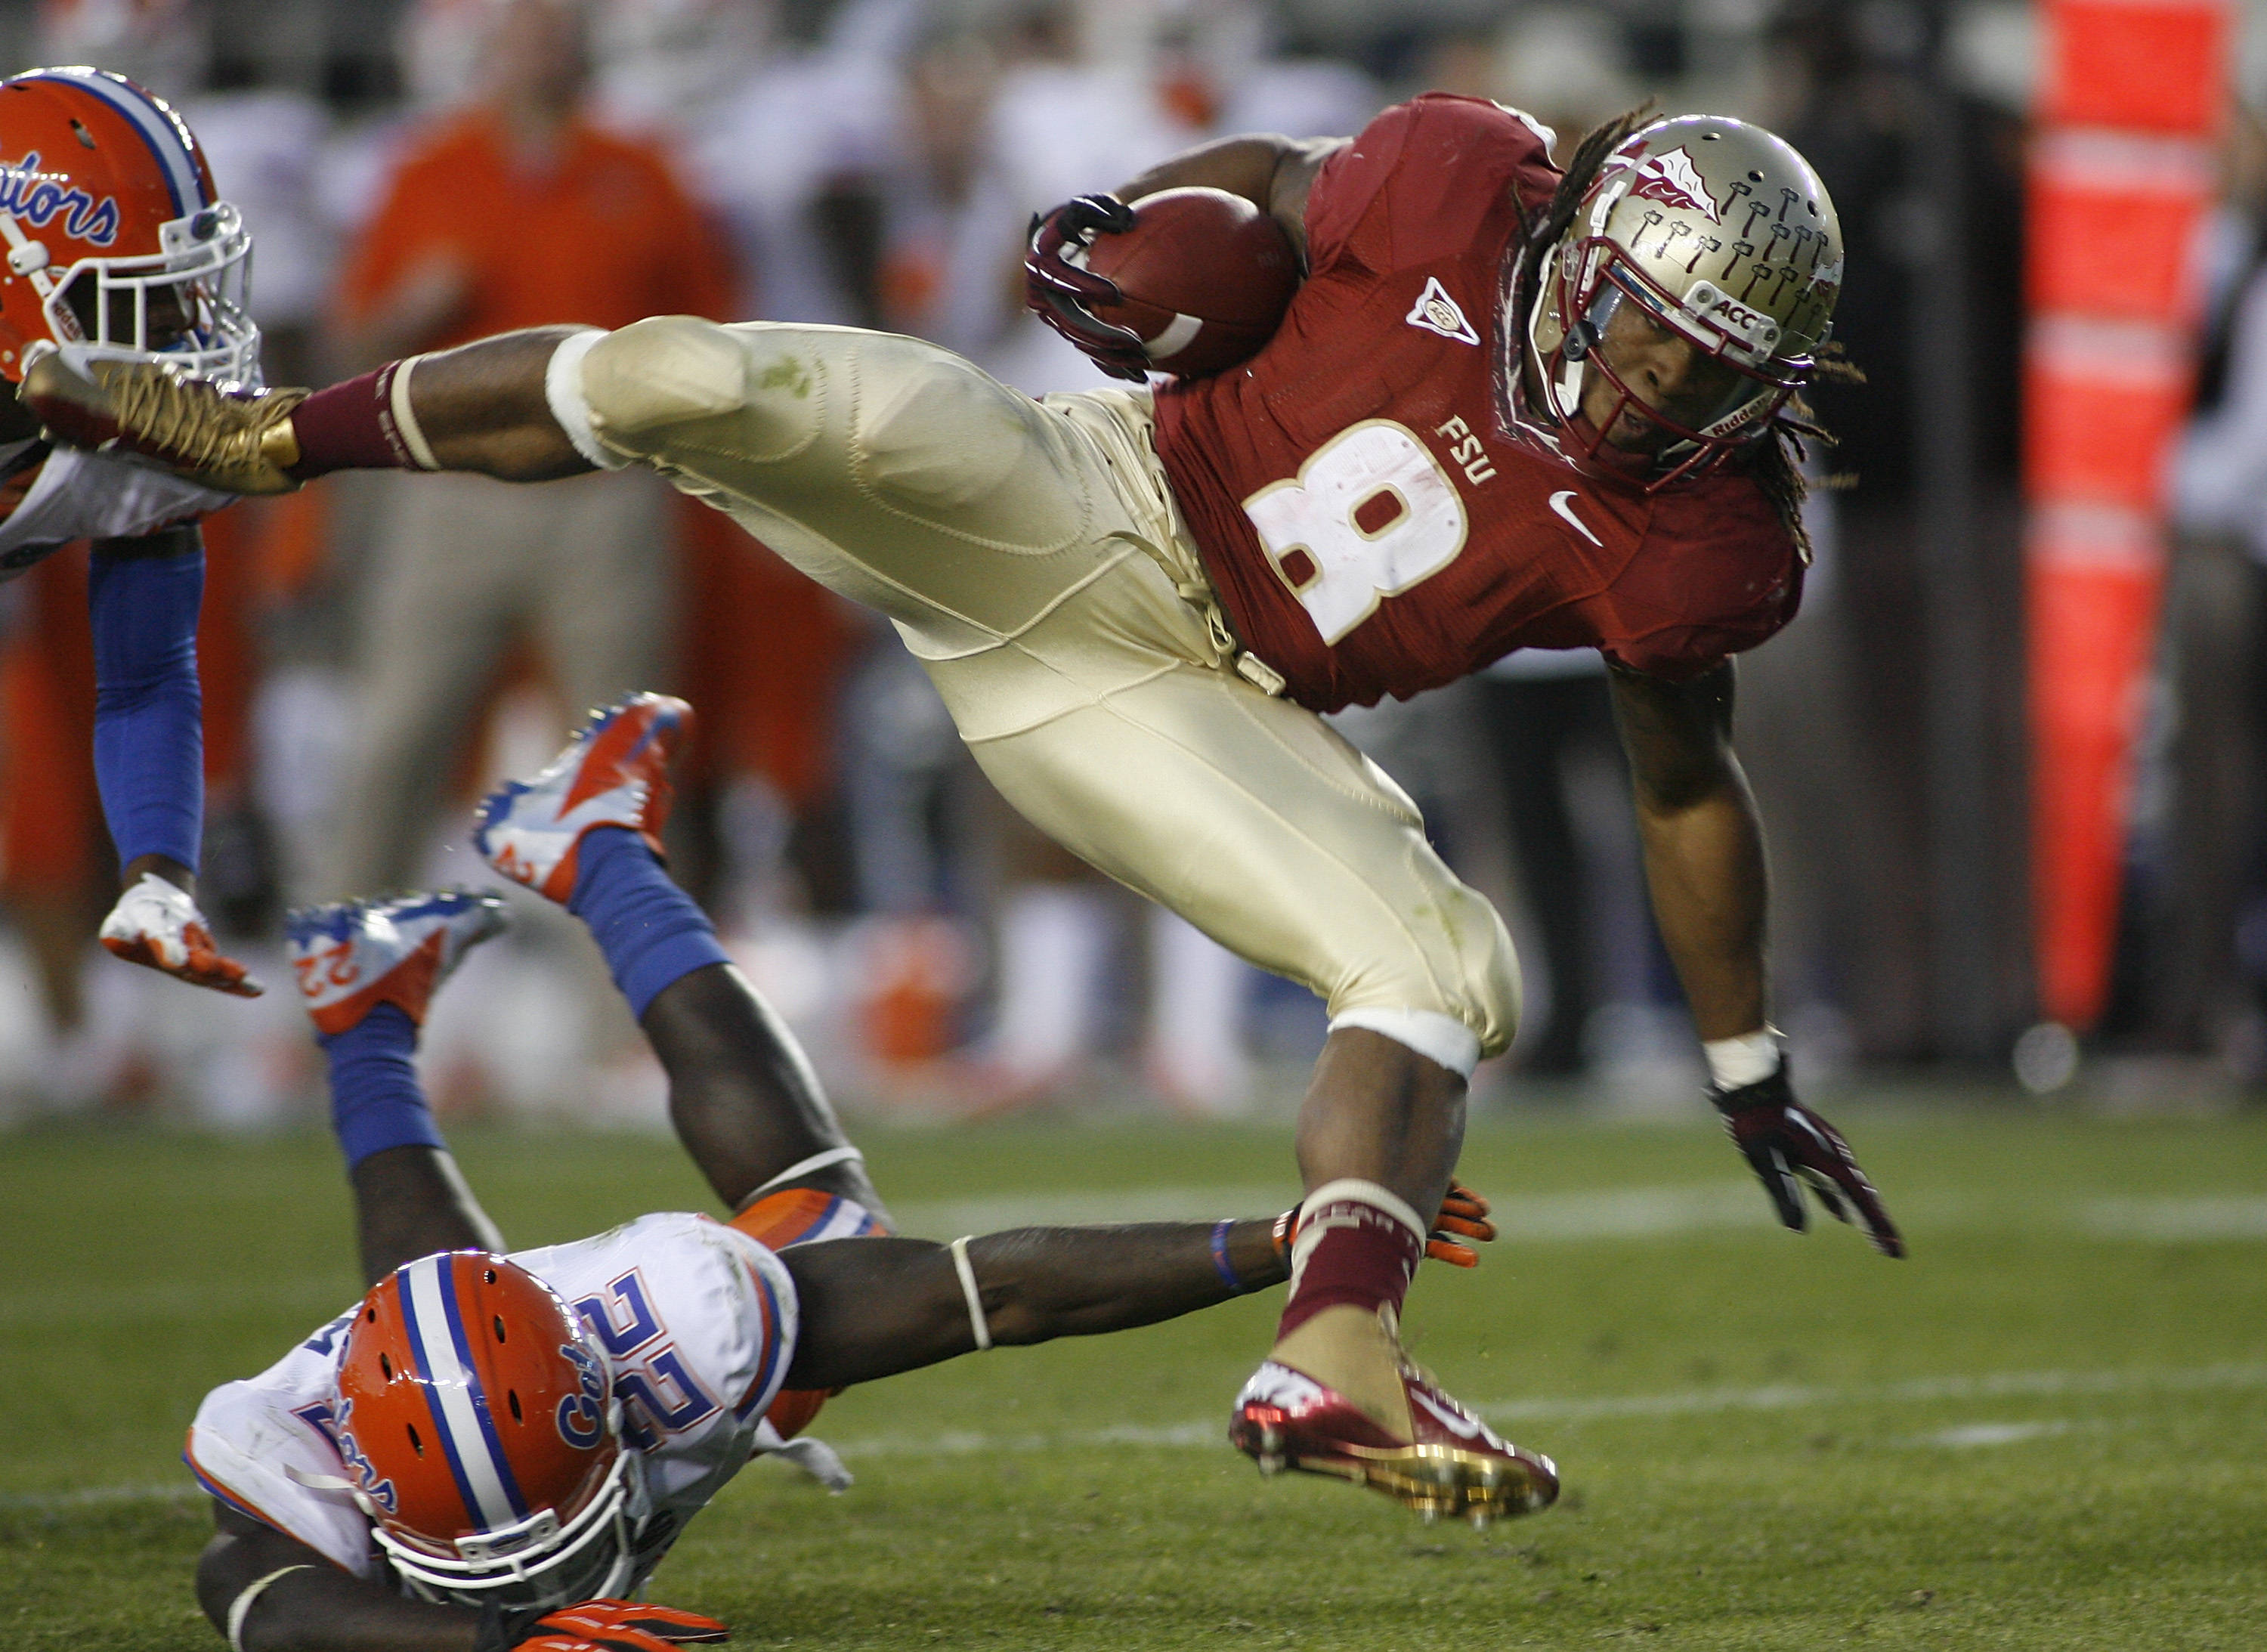 Florida State running back Devonta Freeman (8) goes airborne after he is hit by Florida defensive back Matt Elam (22). (AP Photo/Phil Sears)